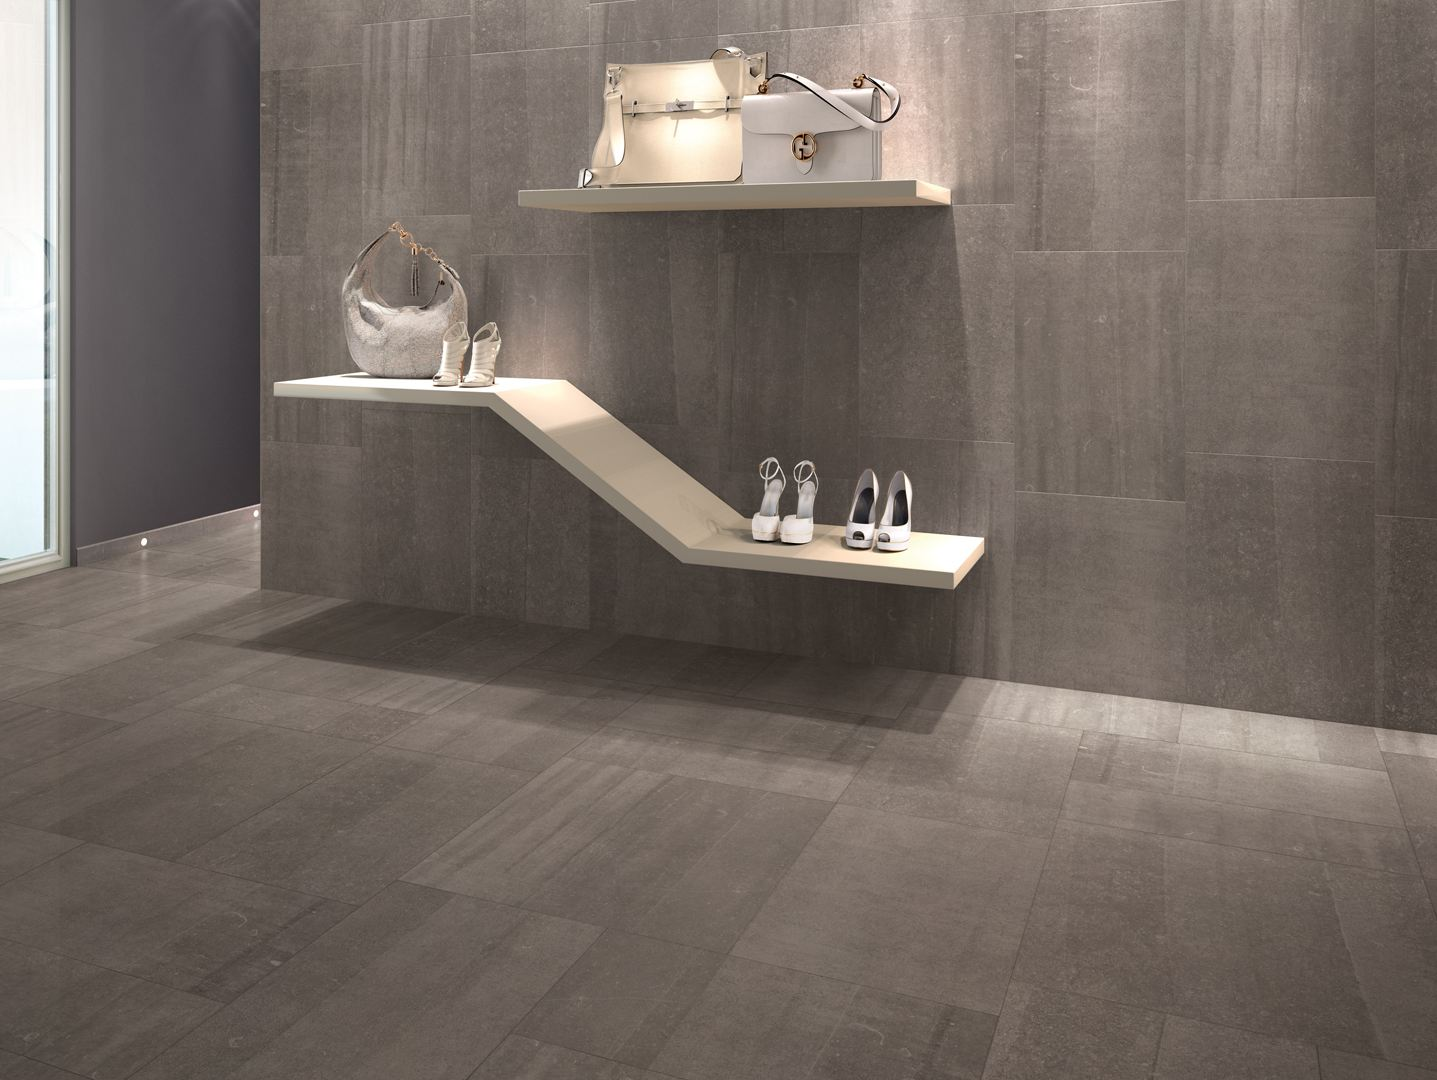 Pavimento rivestimento per interni back brown by ceramiche - Pavimento galleggiante per interni ...